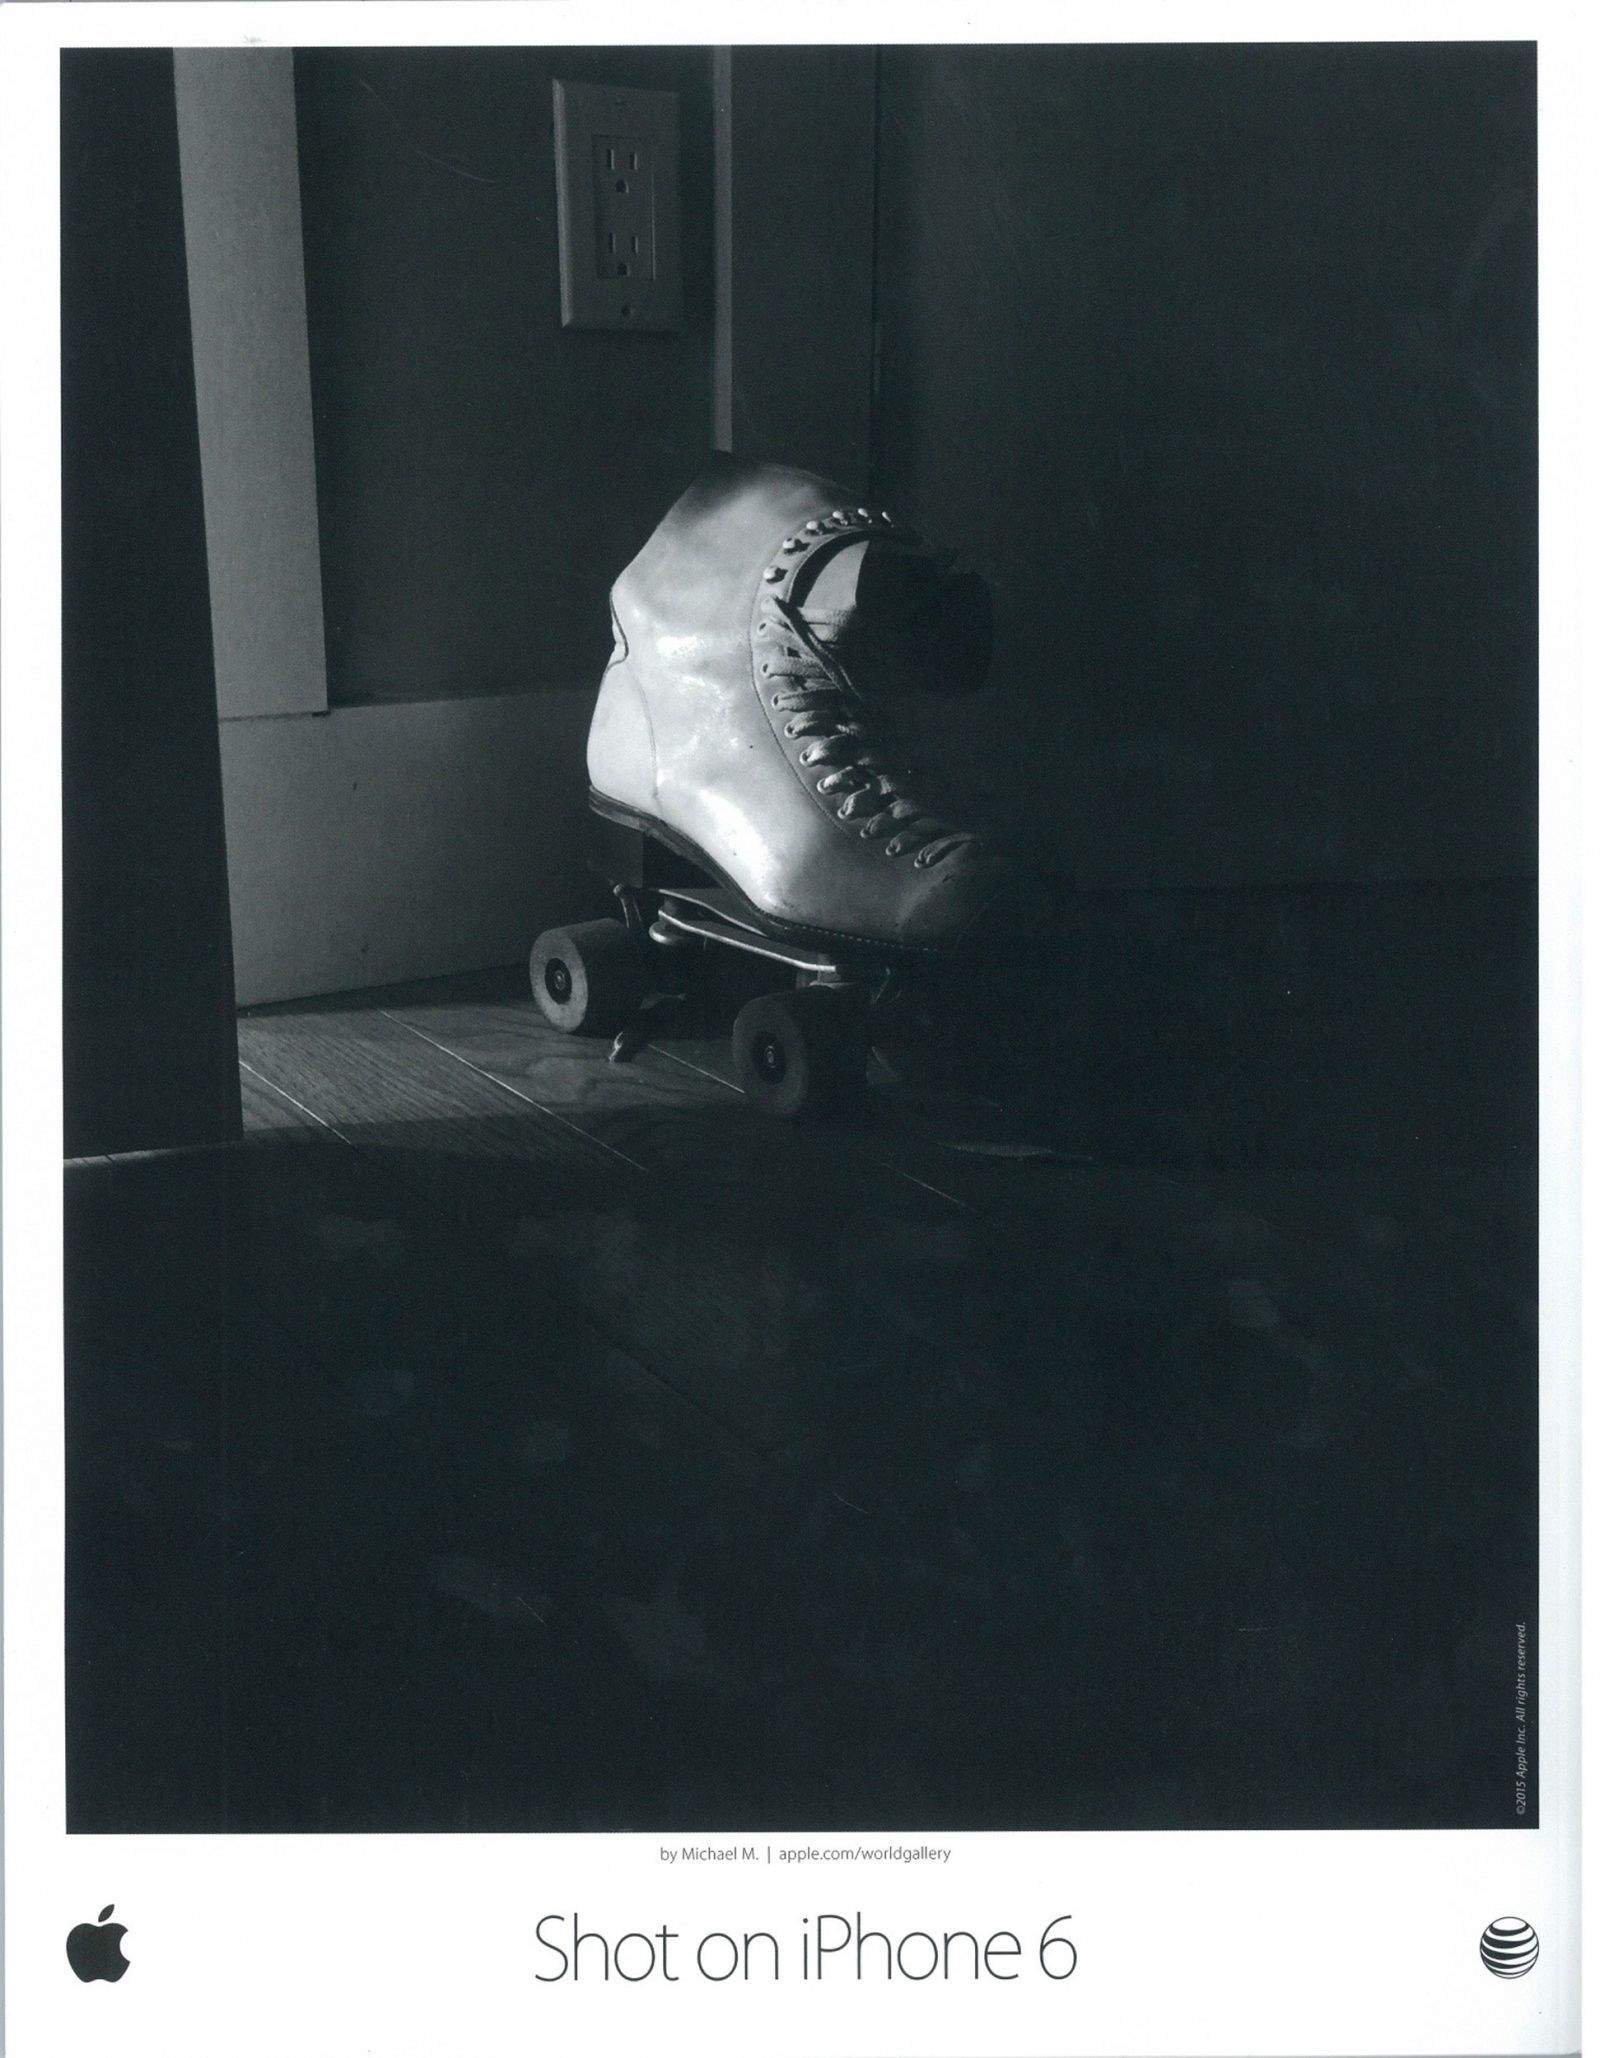 This vintage roller skate was one of three photos by photographer Michael Mainenti that were chosen by Apple for the